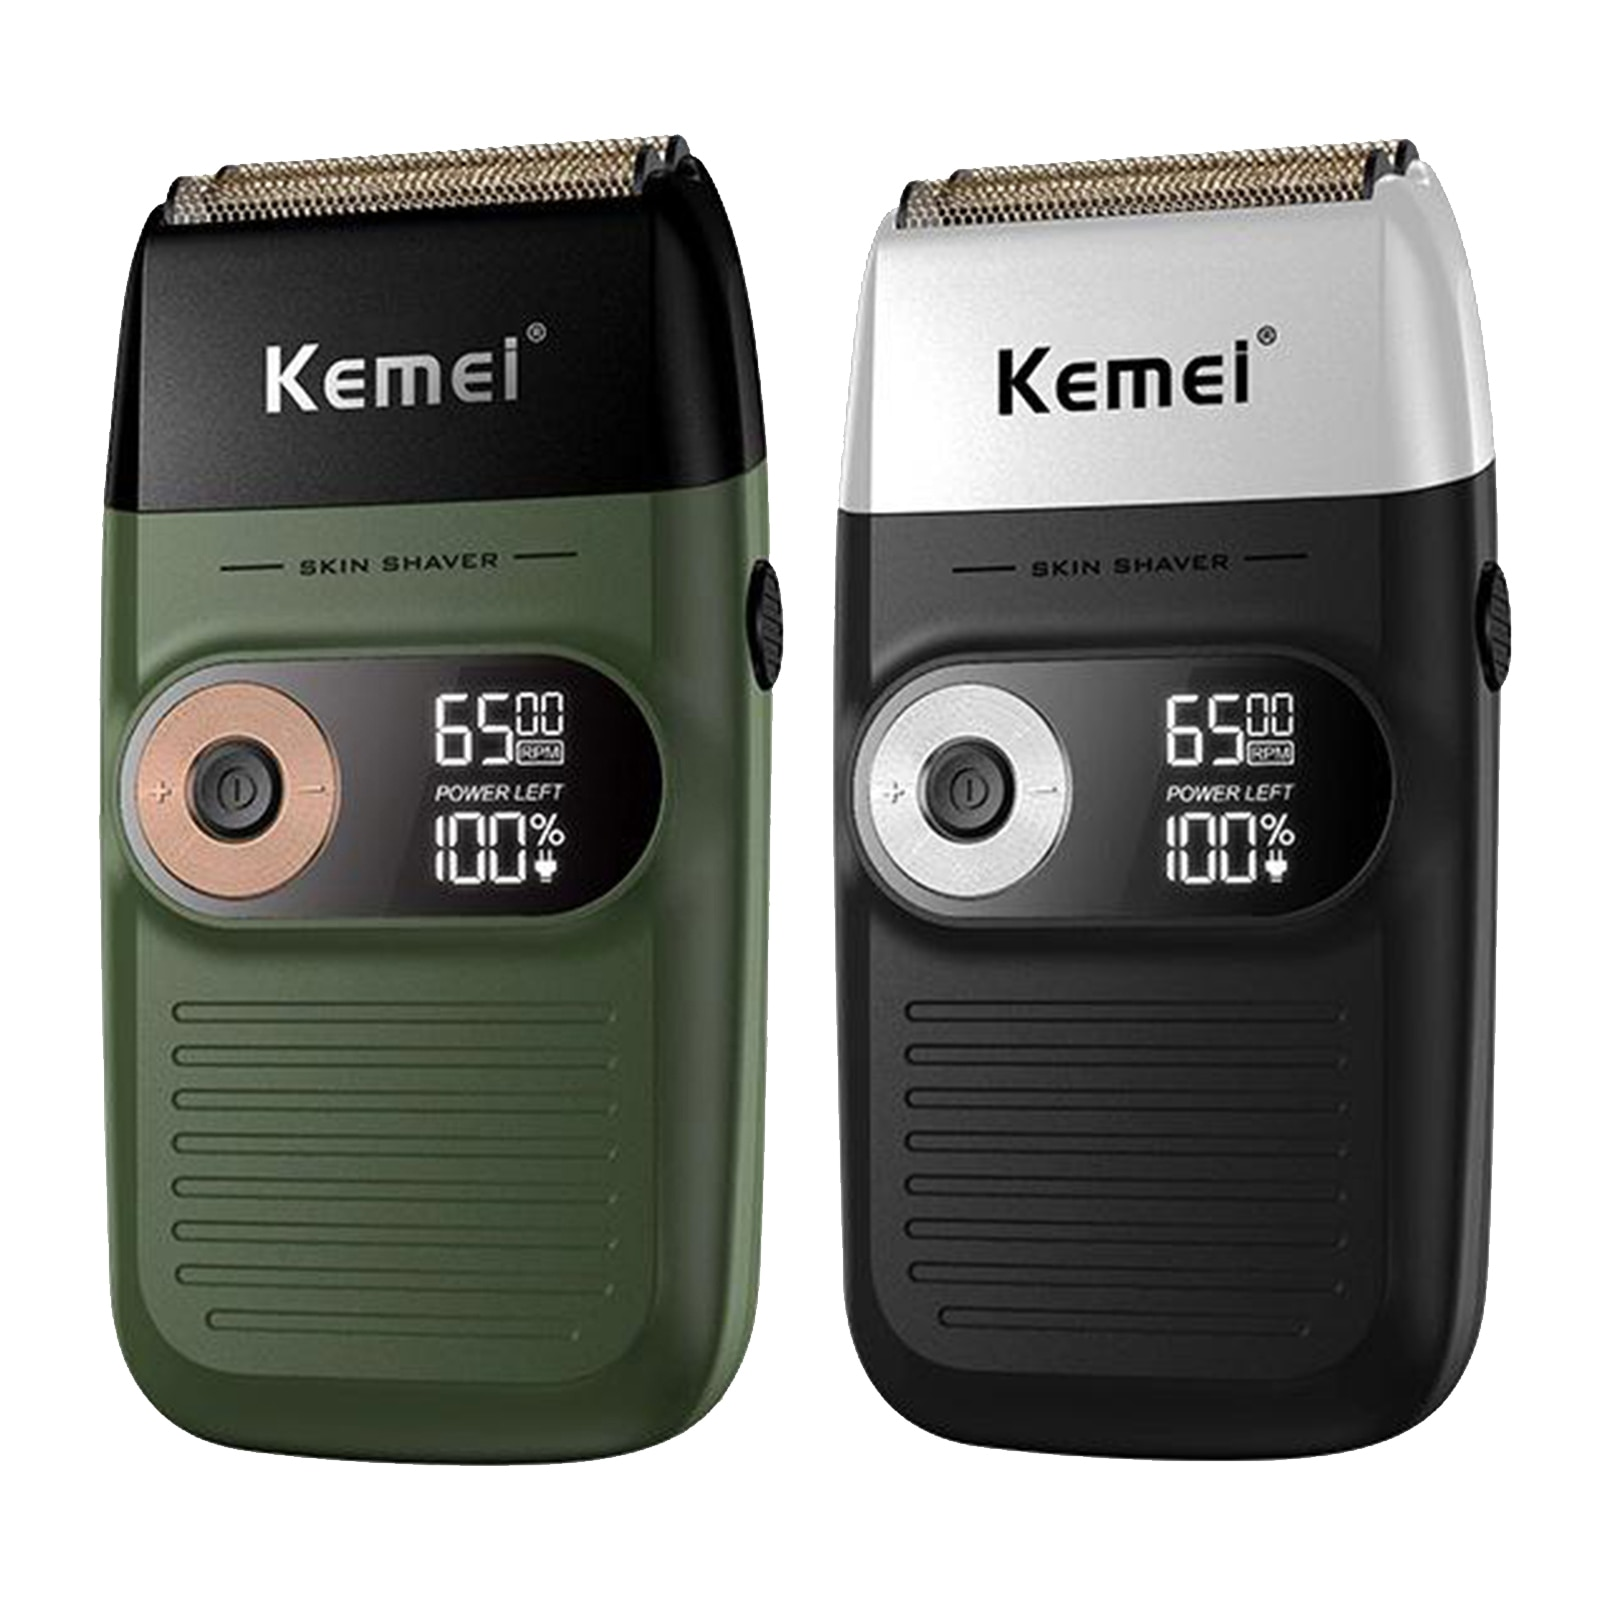 KM-2026 Portable Electric Shaver USB Beard Trimmer Shaving Machine for Men